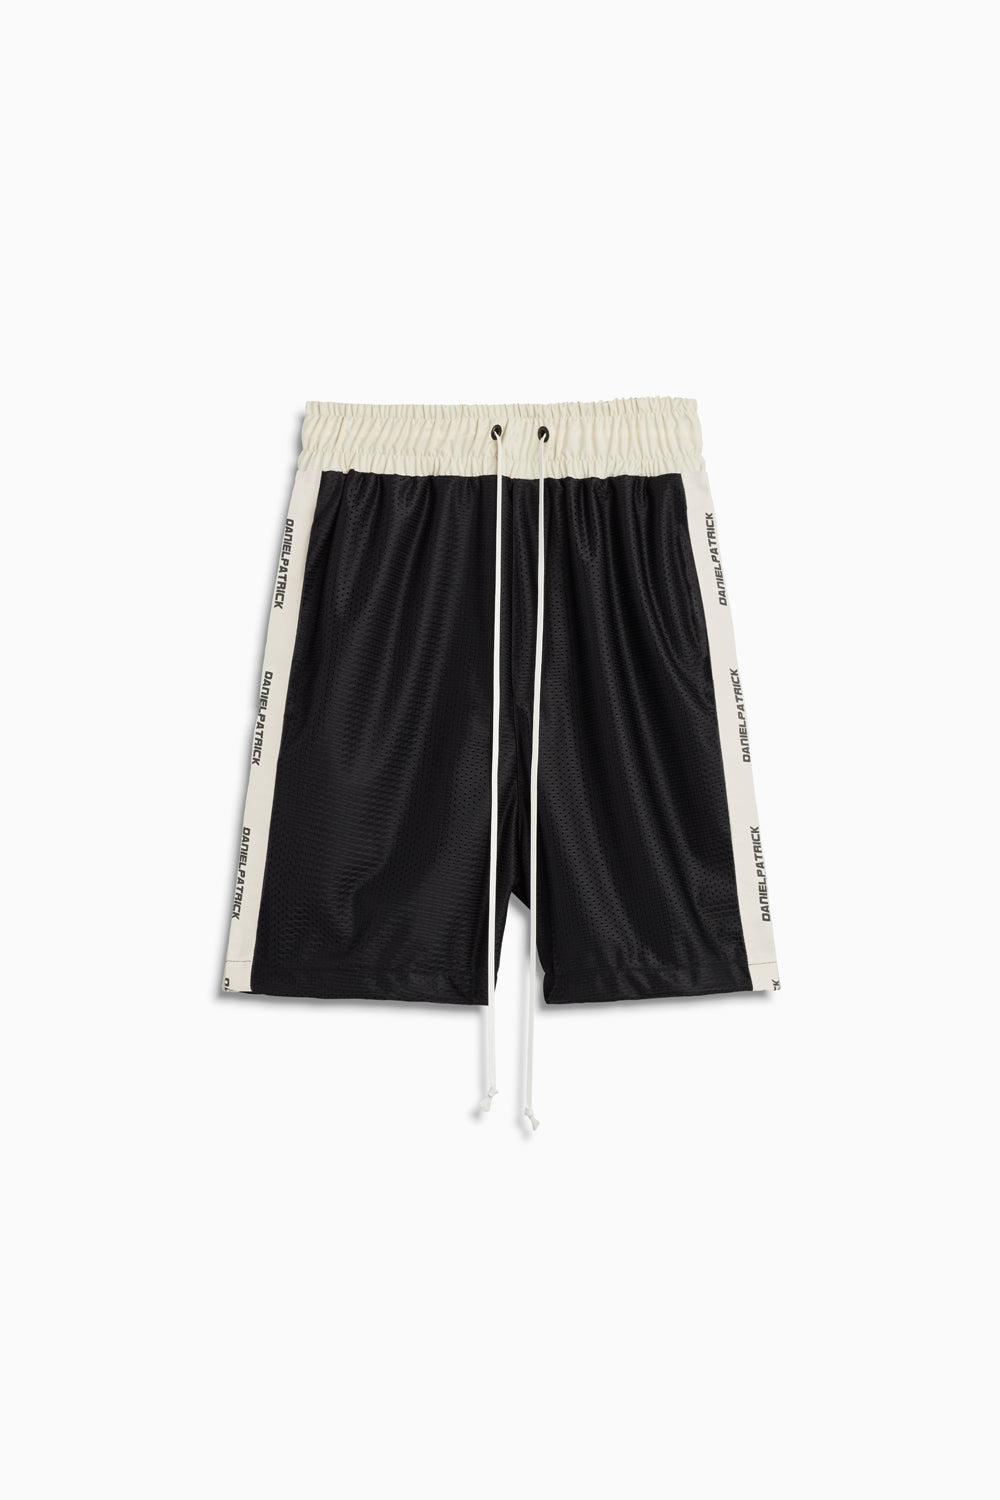 mesh gym short in black/ivory by daniel patrick